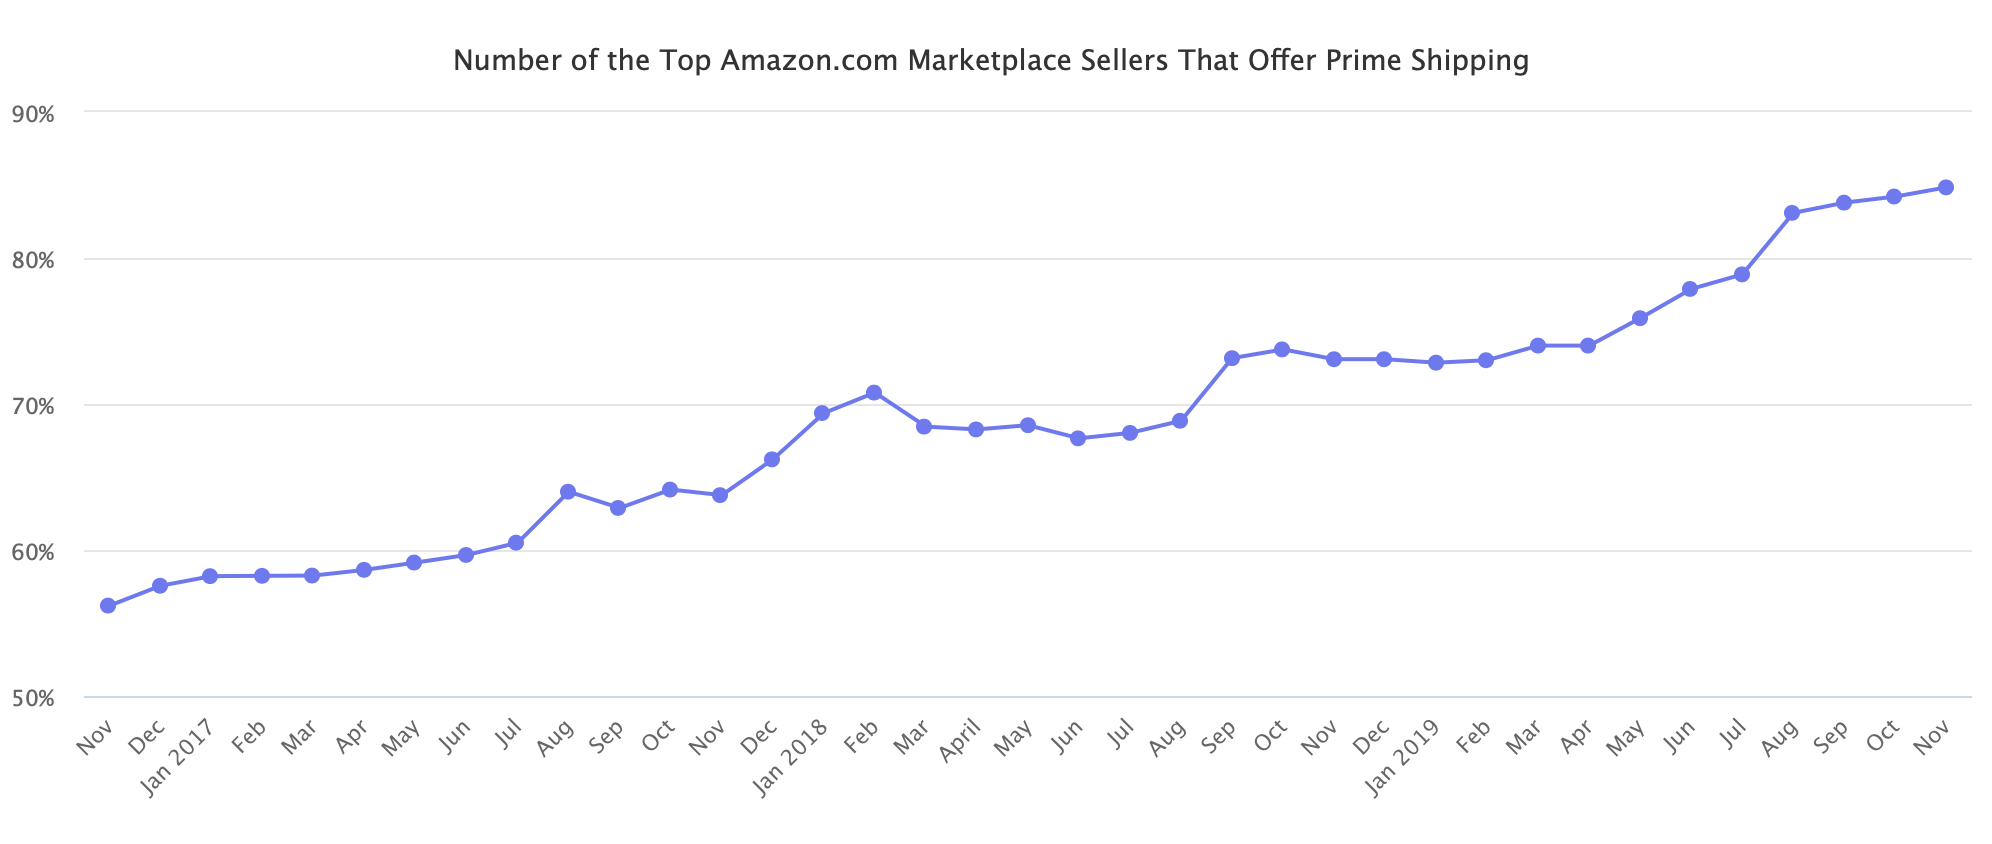 Number of the Top Amazon.com Marketplace Sellers That Offer Prime Shipping